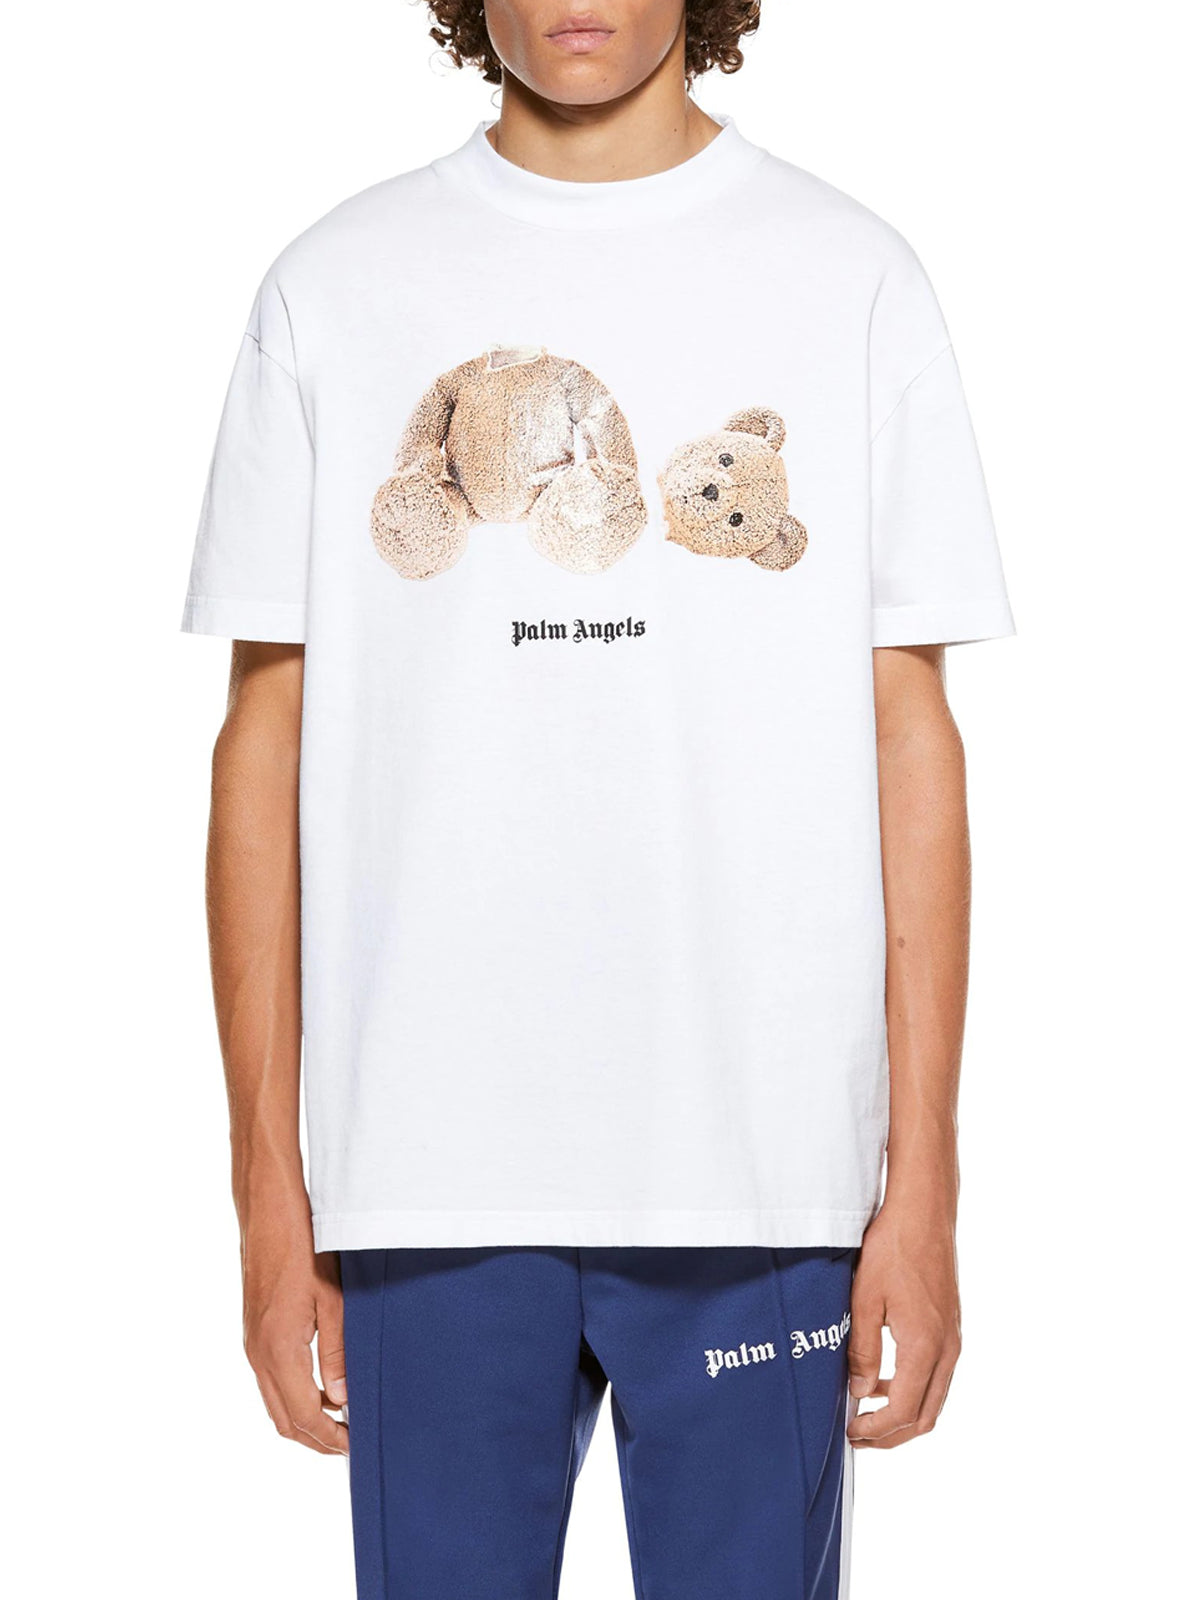 ICE BEAR T-SHIRT